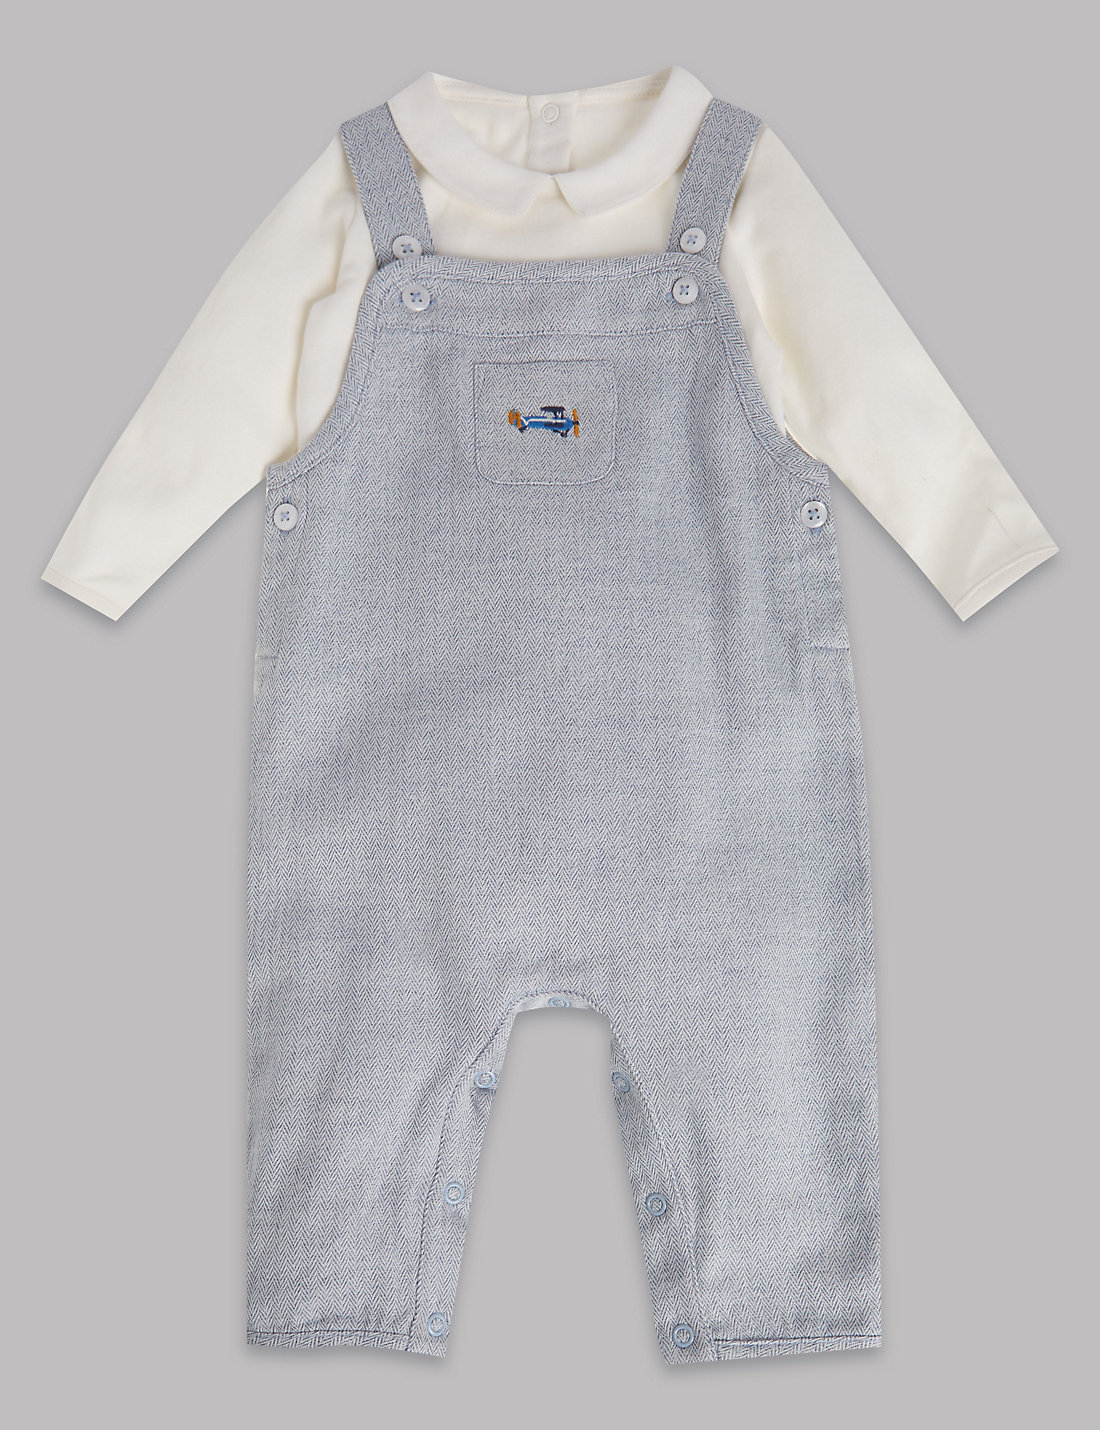 M&S Dungaree set